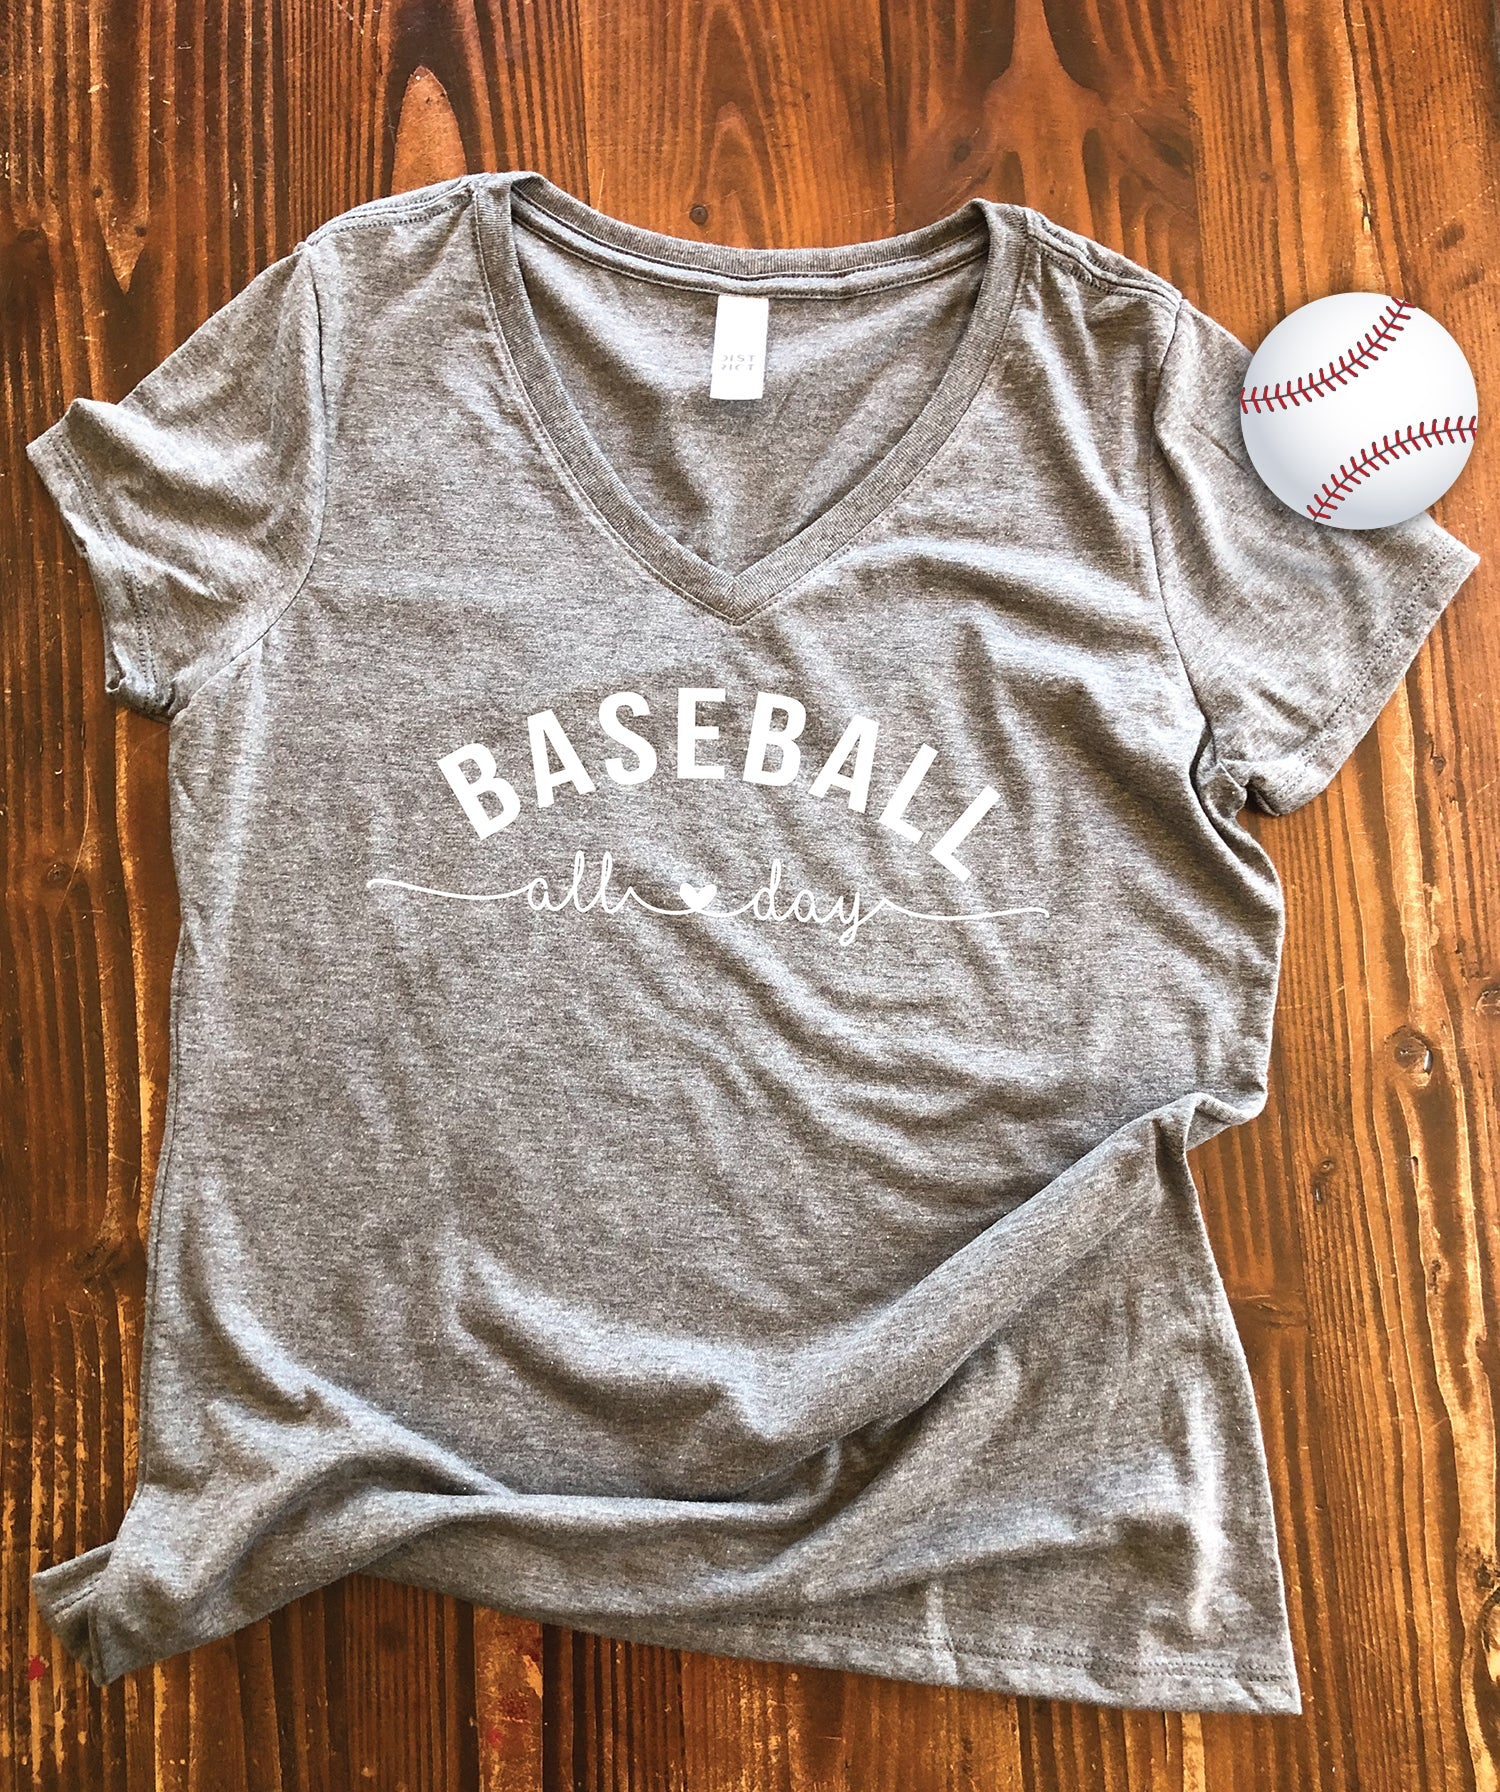 Baseball All Day Graphic Tee